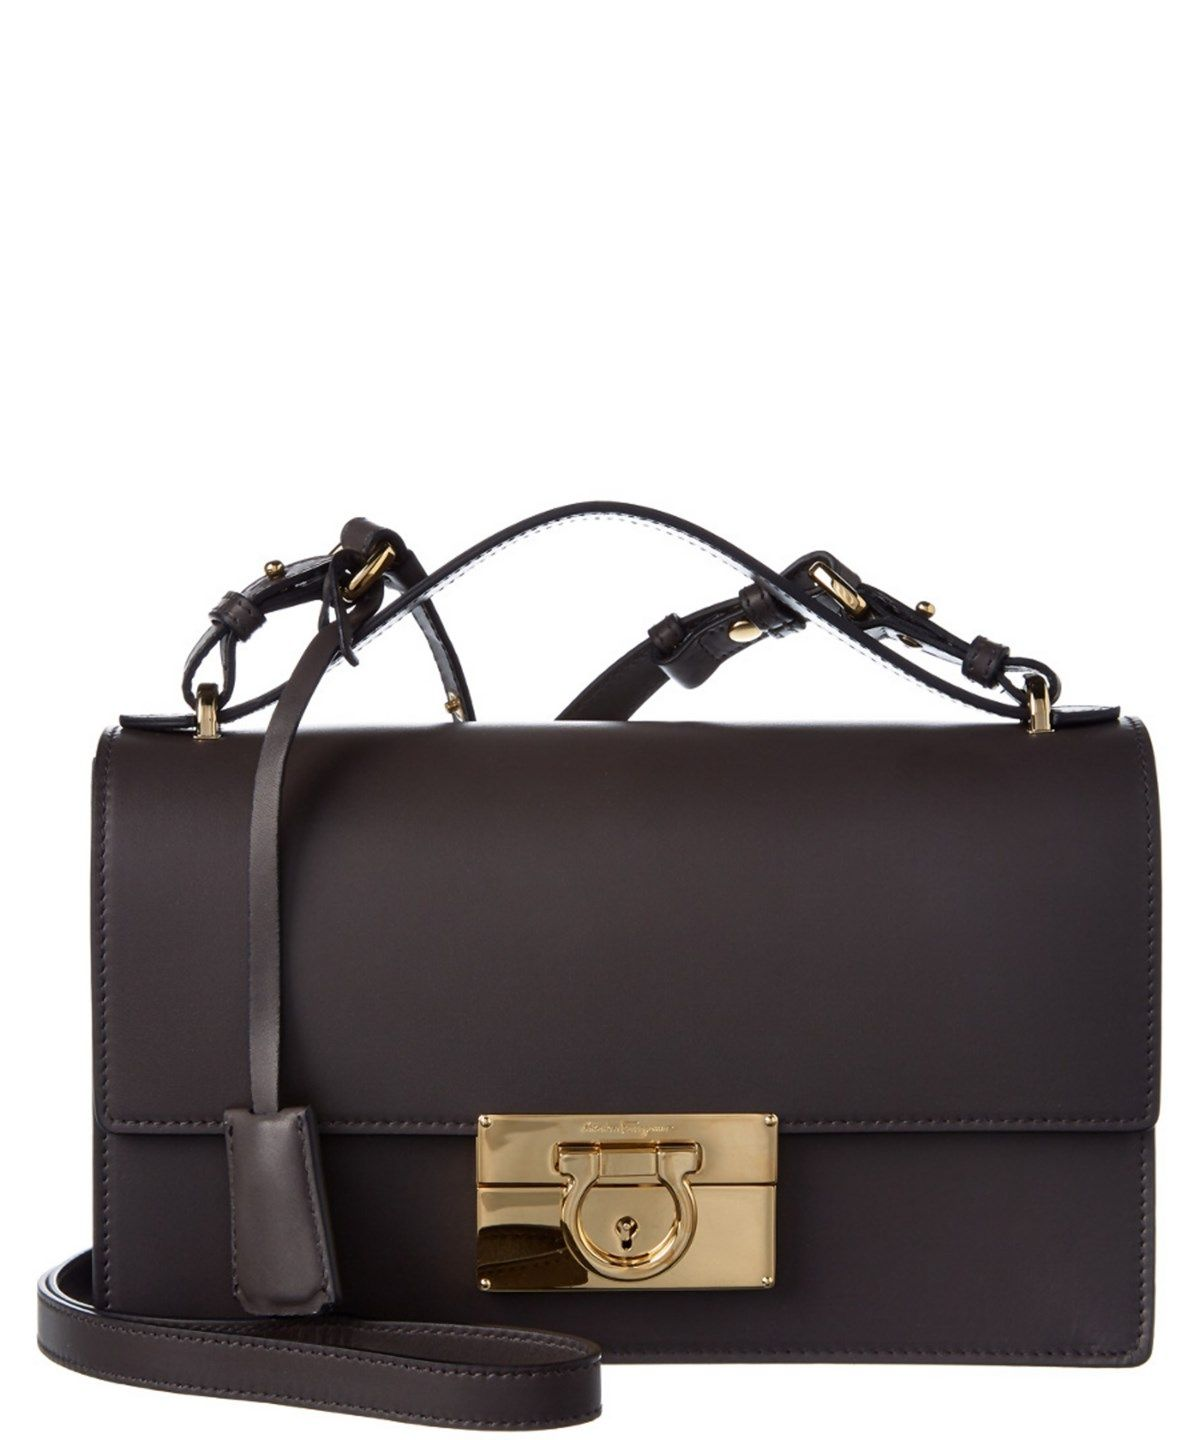 28335acd16 SALVATORE FERRAGAMO Salvatore Ferragamo Aileen Gancio Lock Leather Shoulder  Bag .  salvatoreferragamo  bags  shoulder bags  hand bags  leather  lining